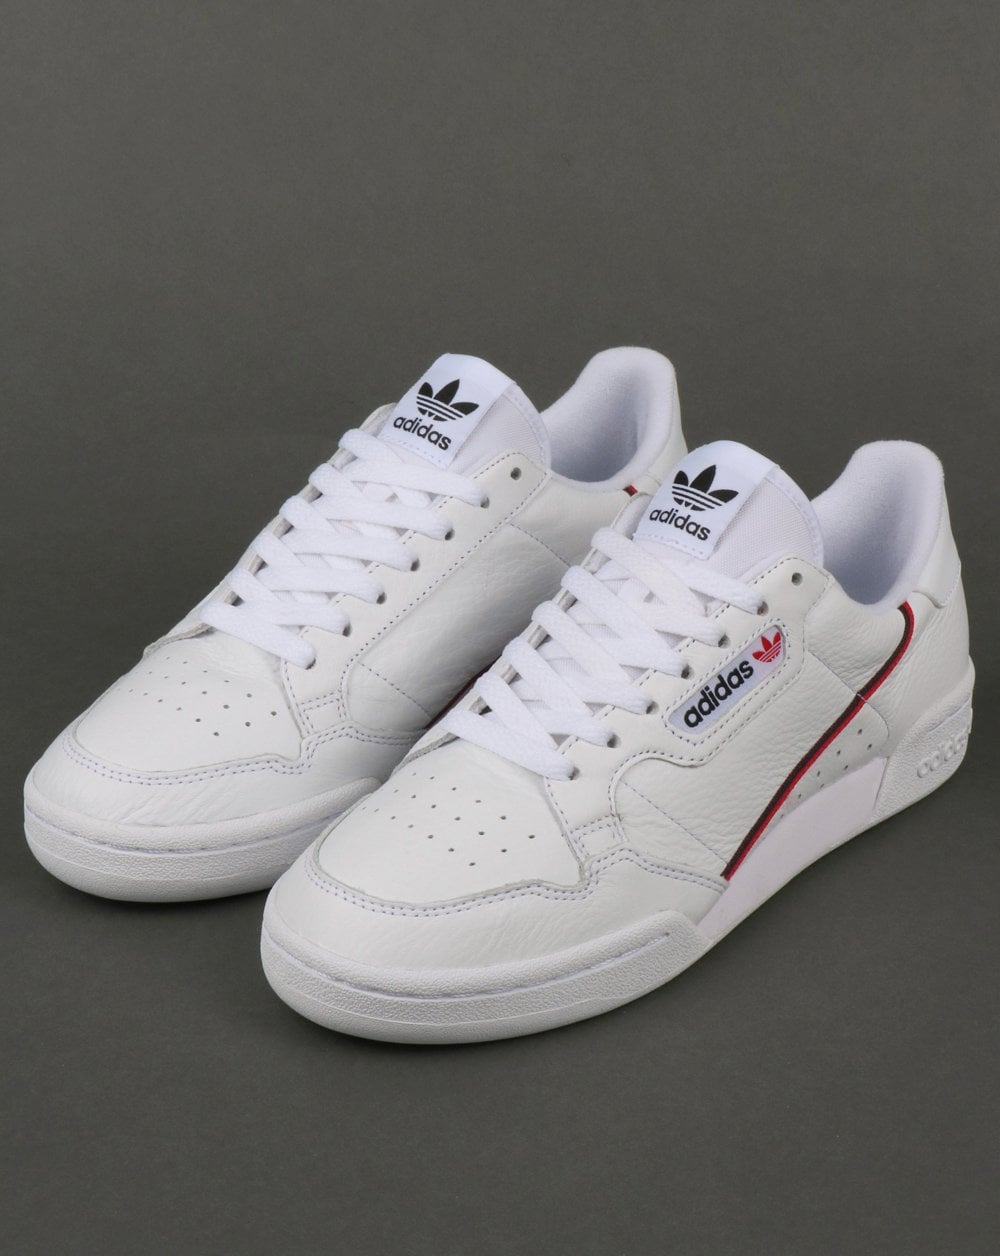 adidas Continental 80 trainer